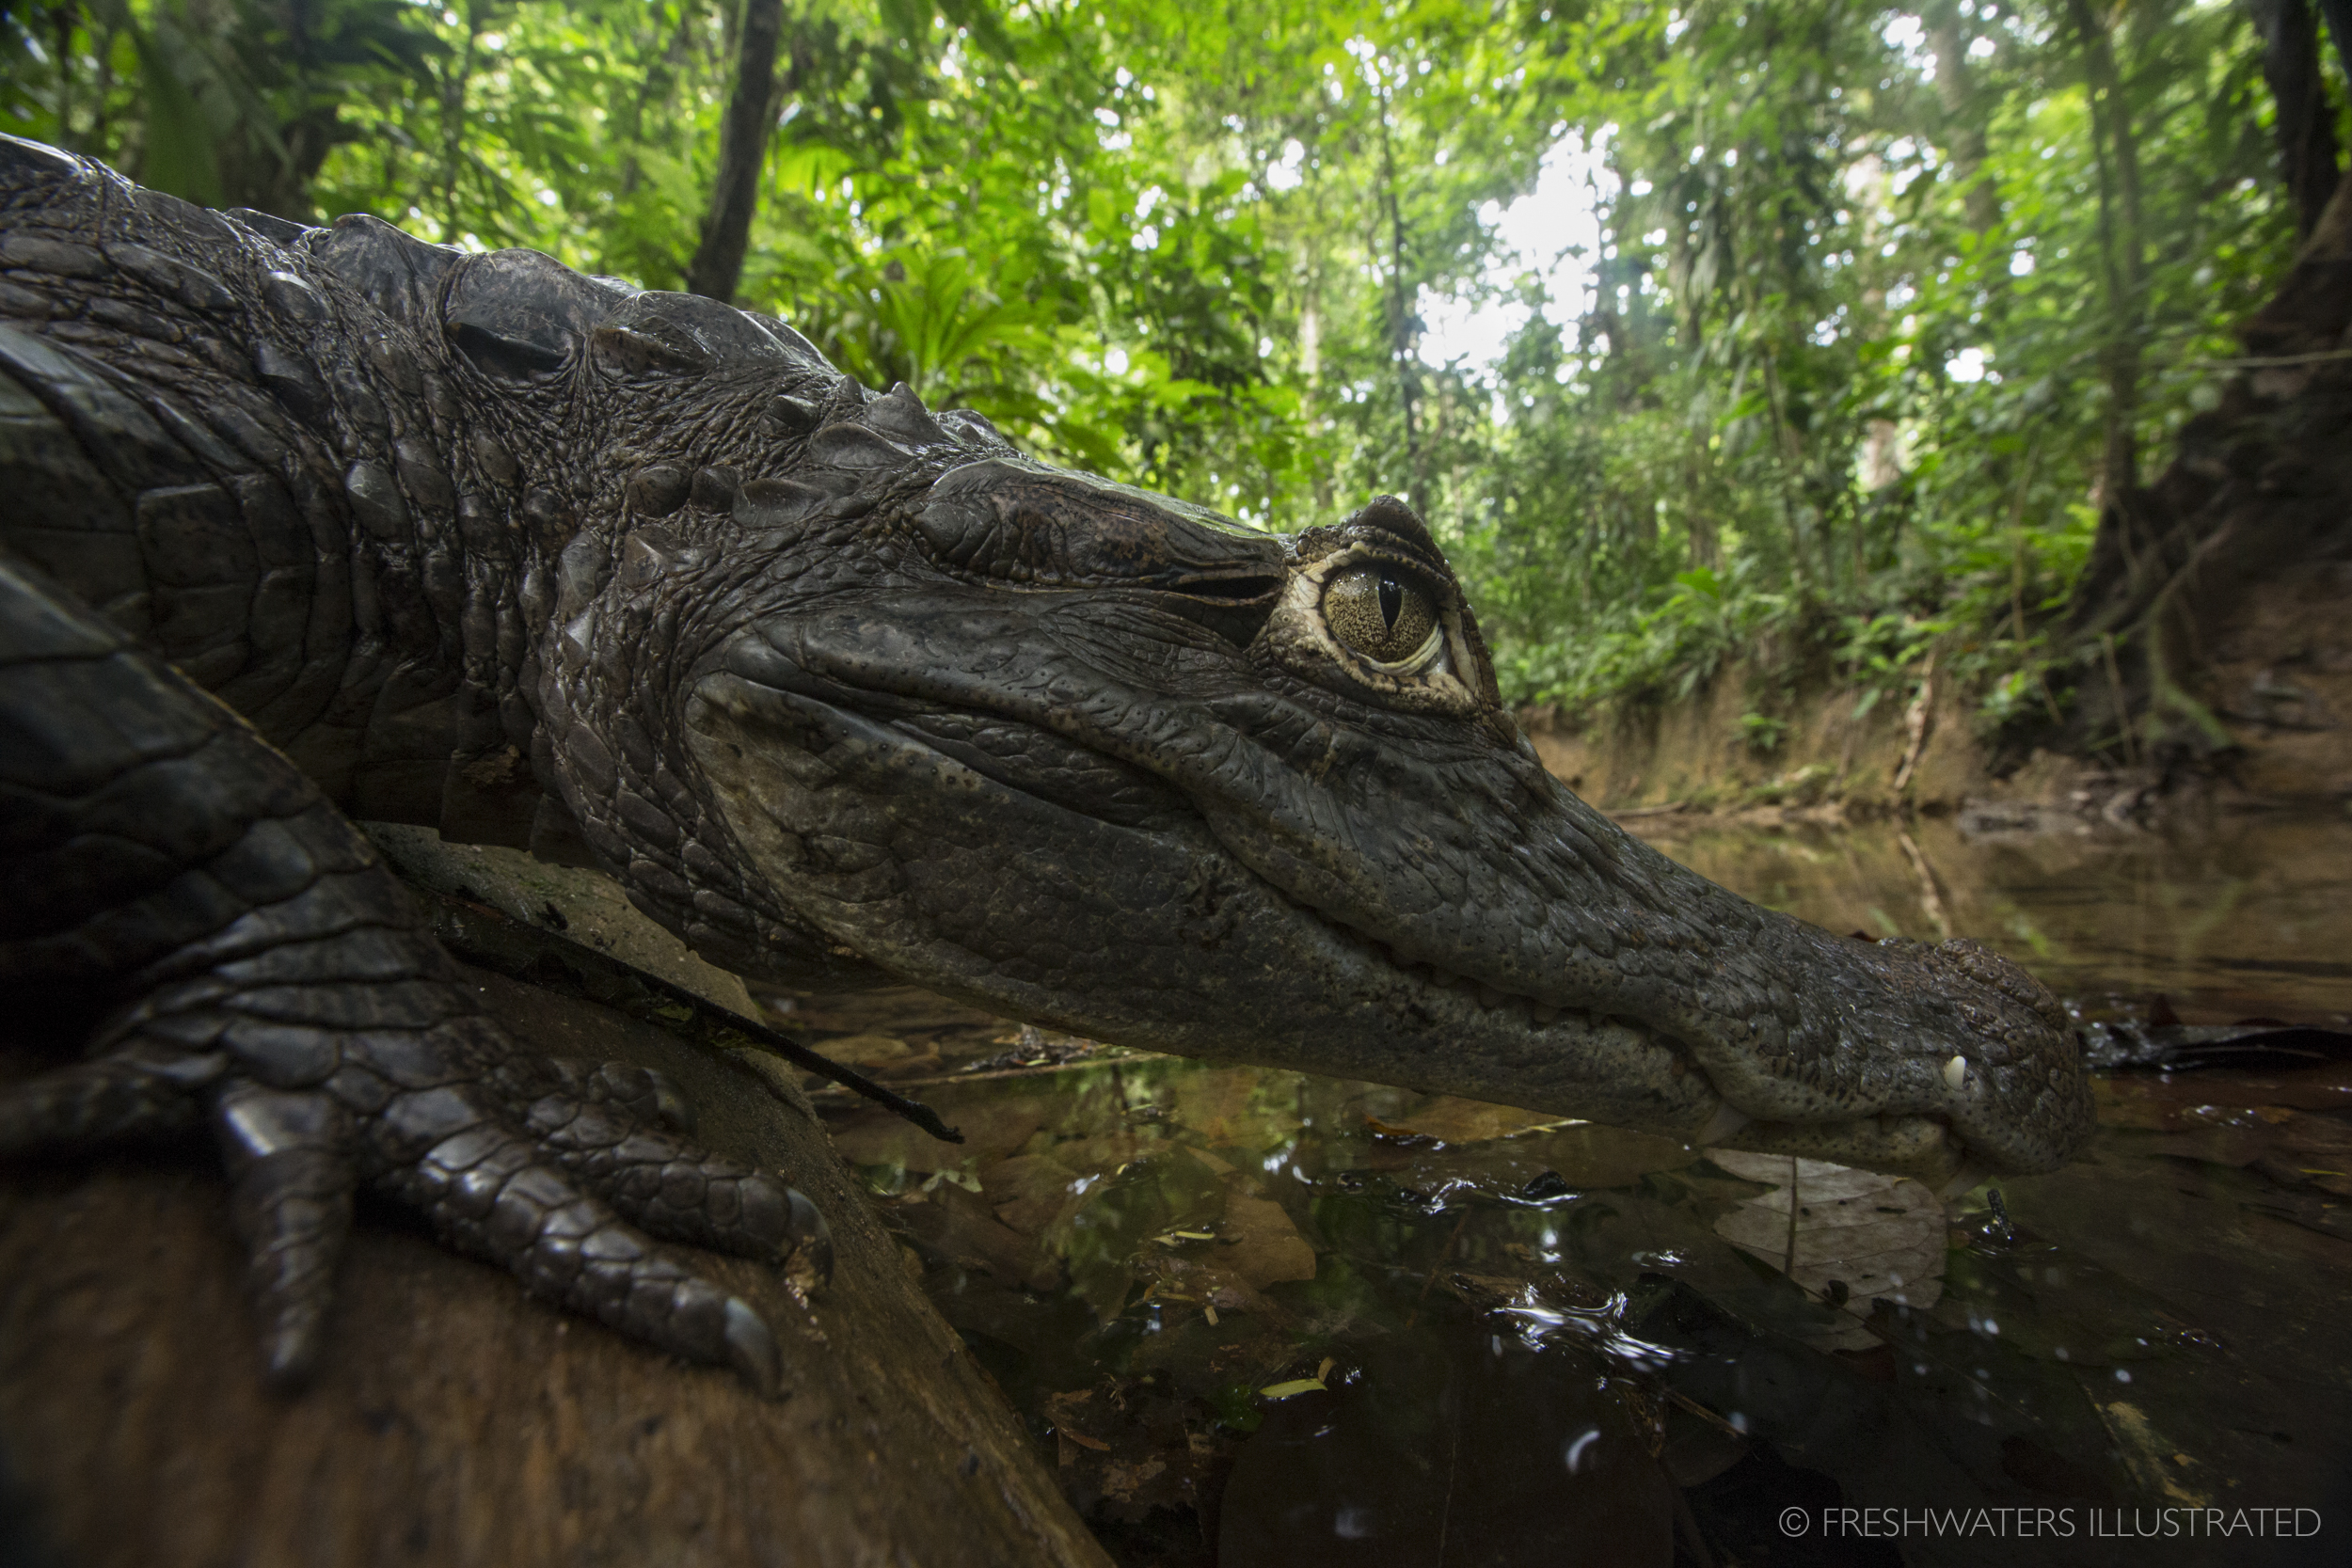 Spectacled caiman (Caiman crocodilus) resting on the bank Creek Azul, Costa Rica